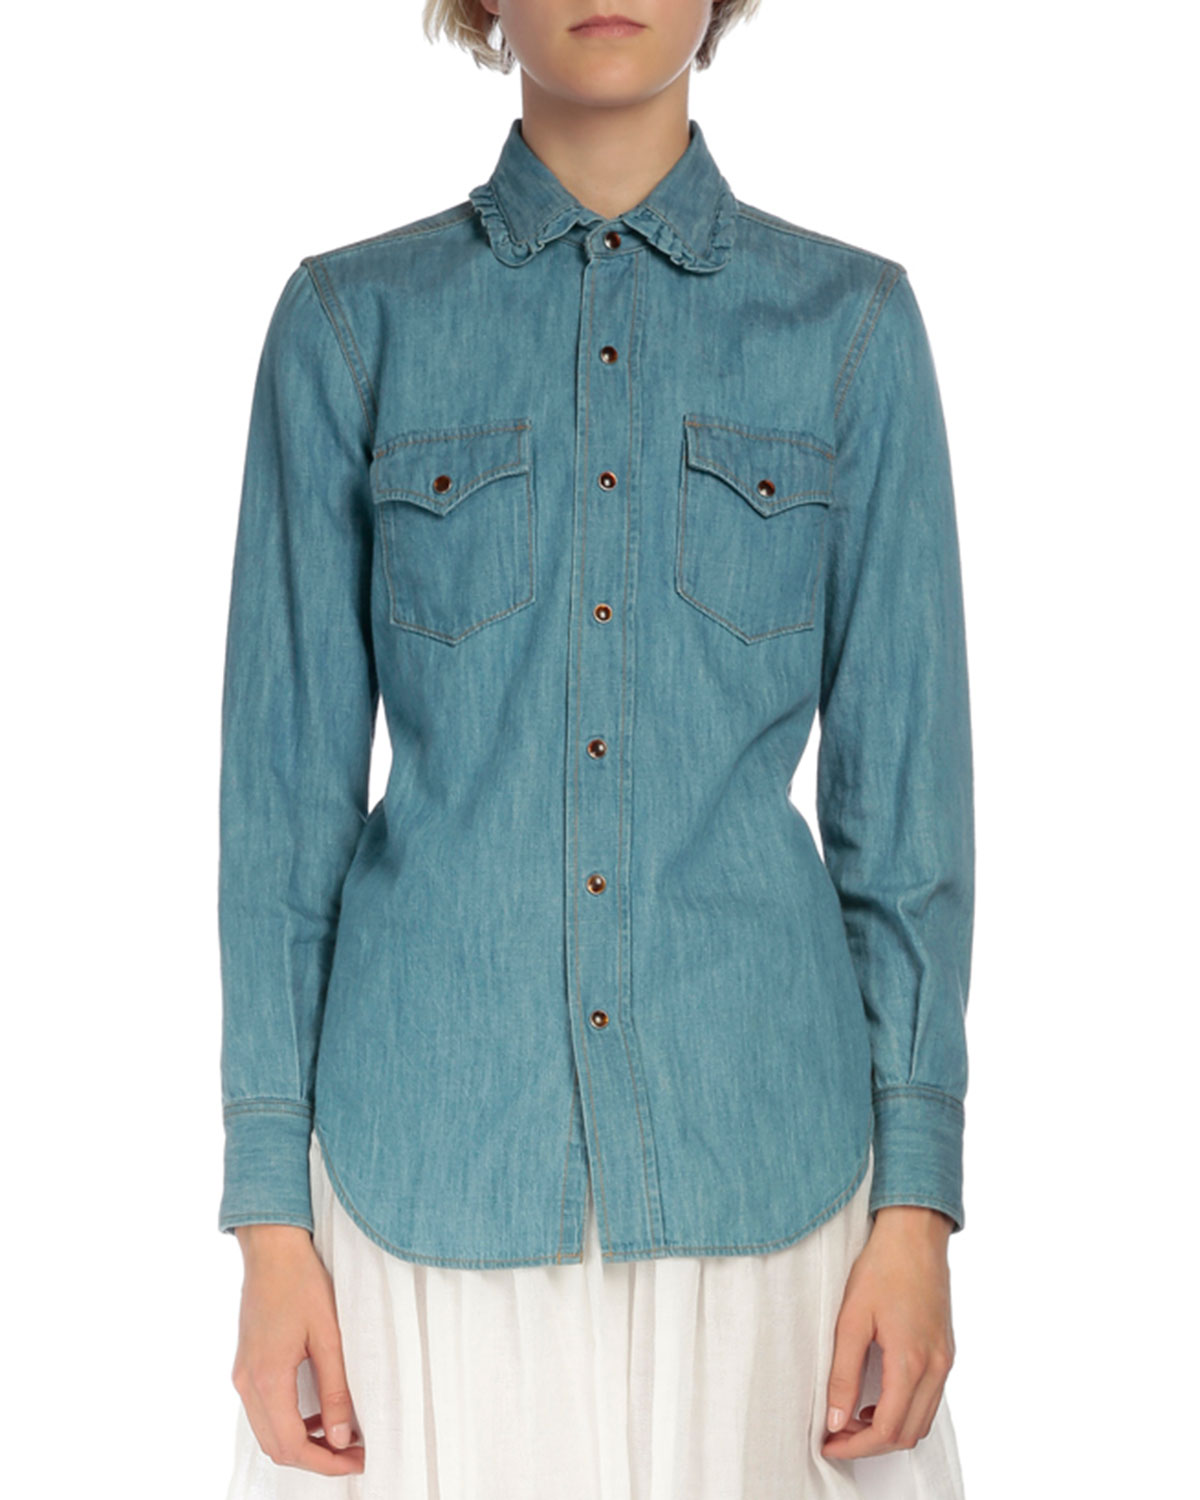 Ruffled-Collar Chambray Shirt, Denim